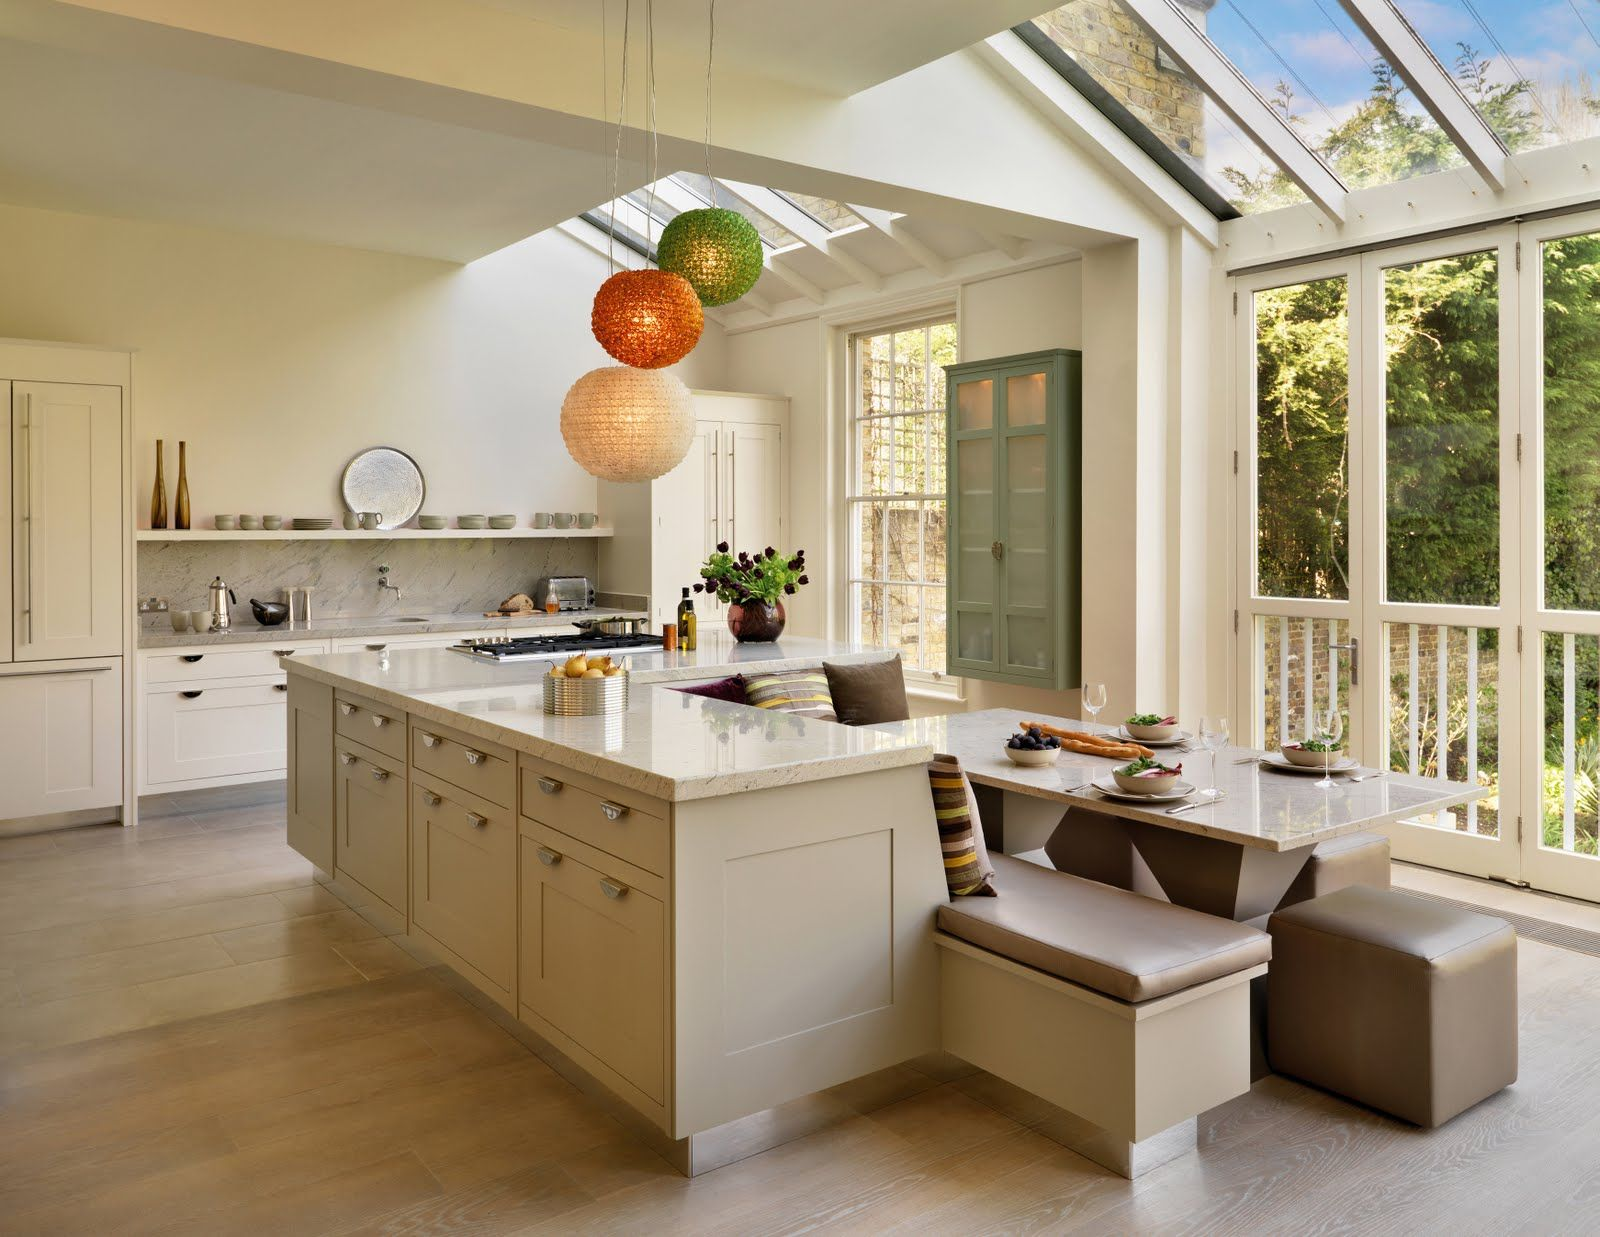 Island Extension And Breakfast Table In One  Dream Home Adorable Kitchen Island Pictures Designs Decorating Design